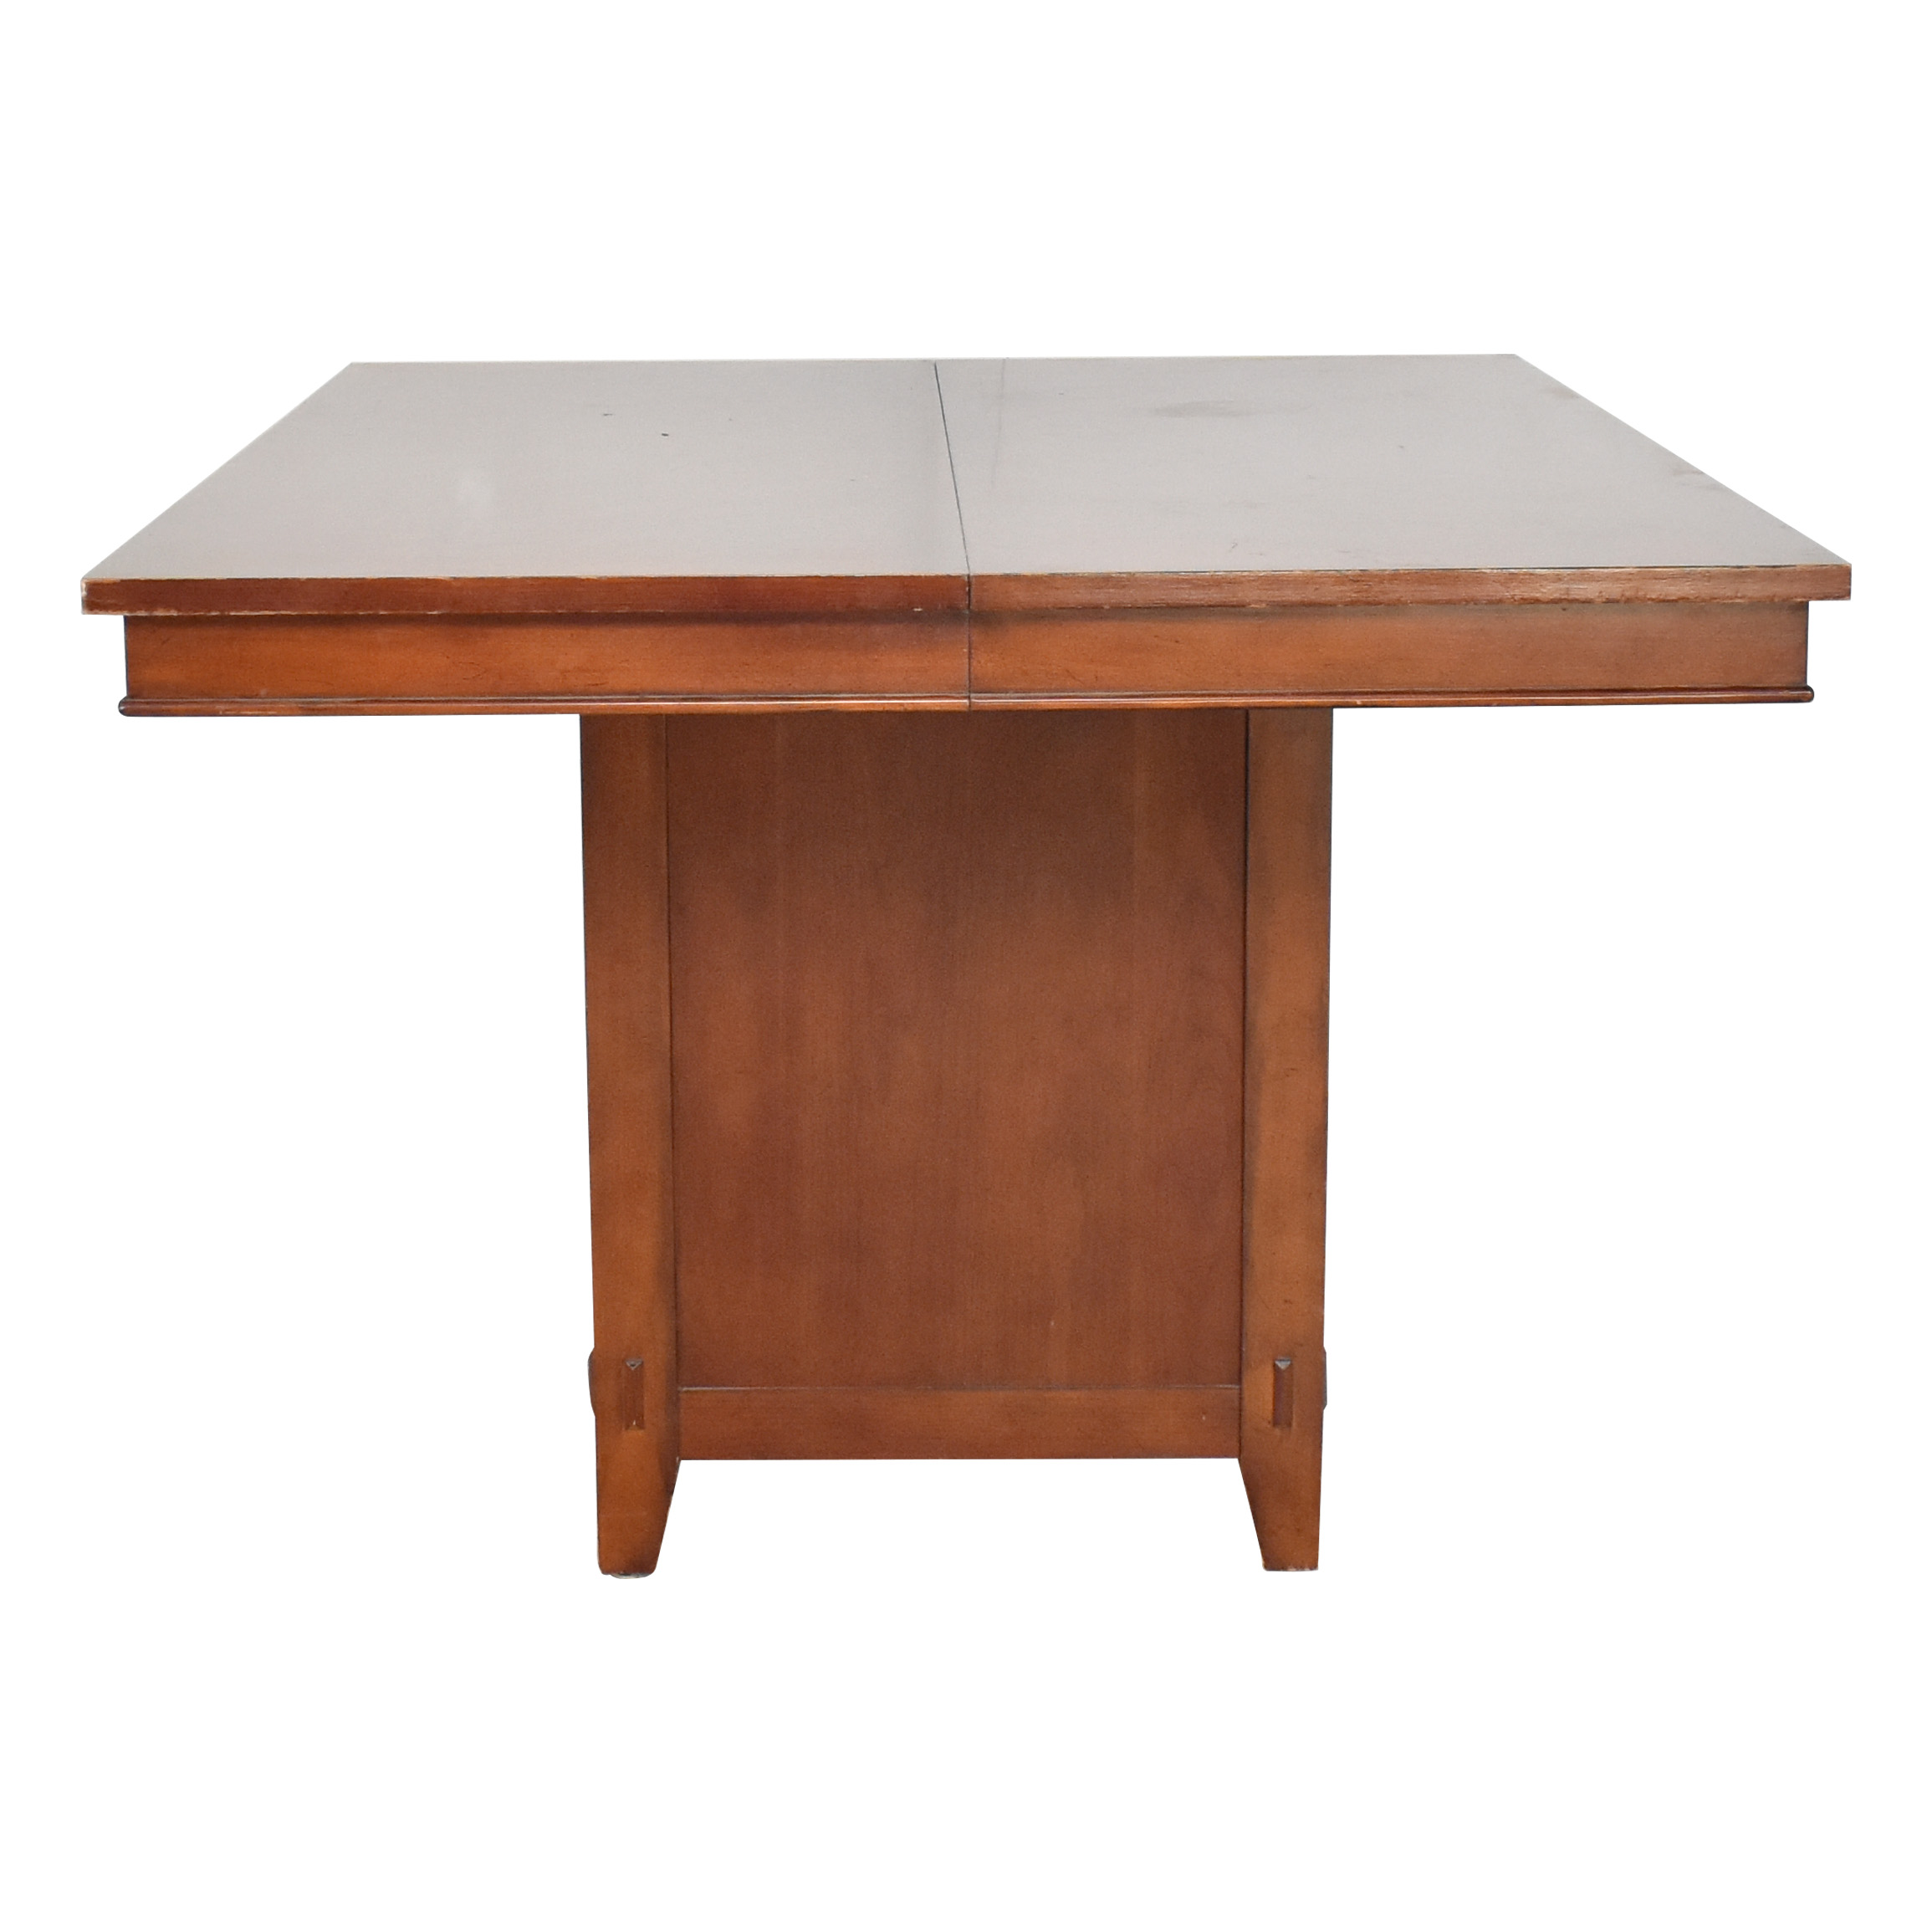 buy Broyhill Furniture Vantana Dining Table Broyhill Furniture Dinner Tables